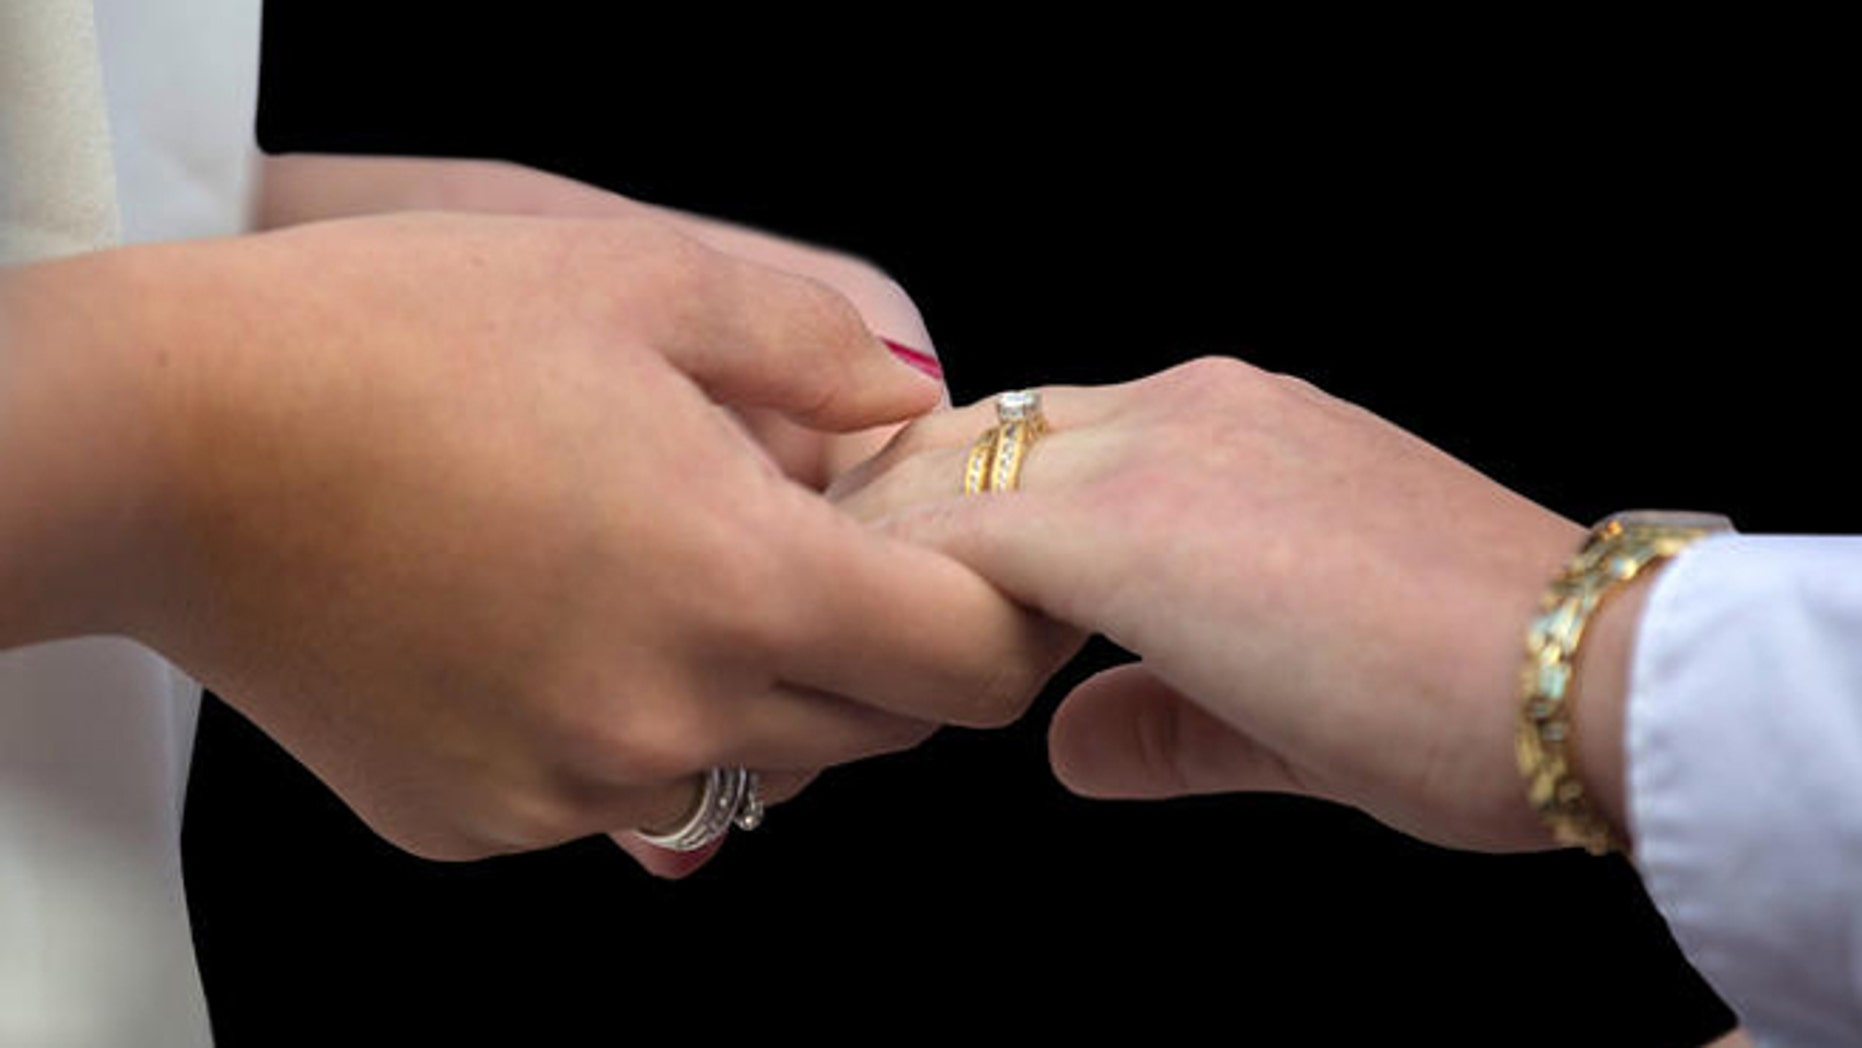 Same-sex couples in Tennessee have the same rights as heterosexual couples who have children born through artificial insemination, a judge ruled.